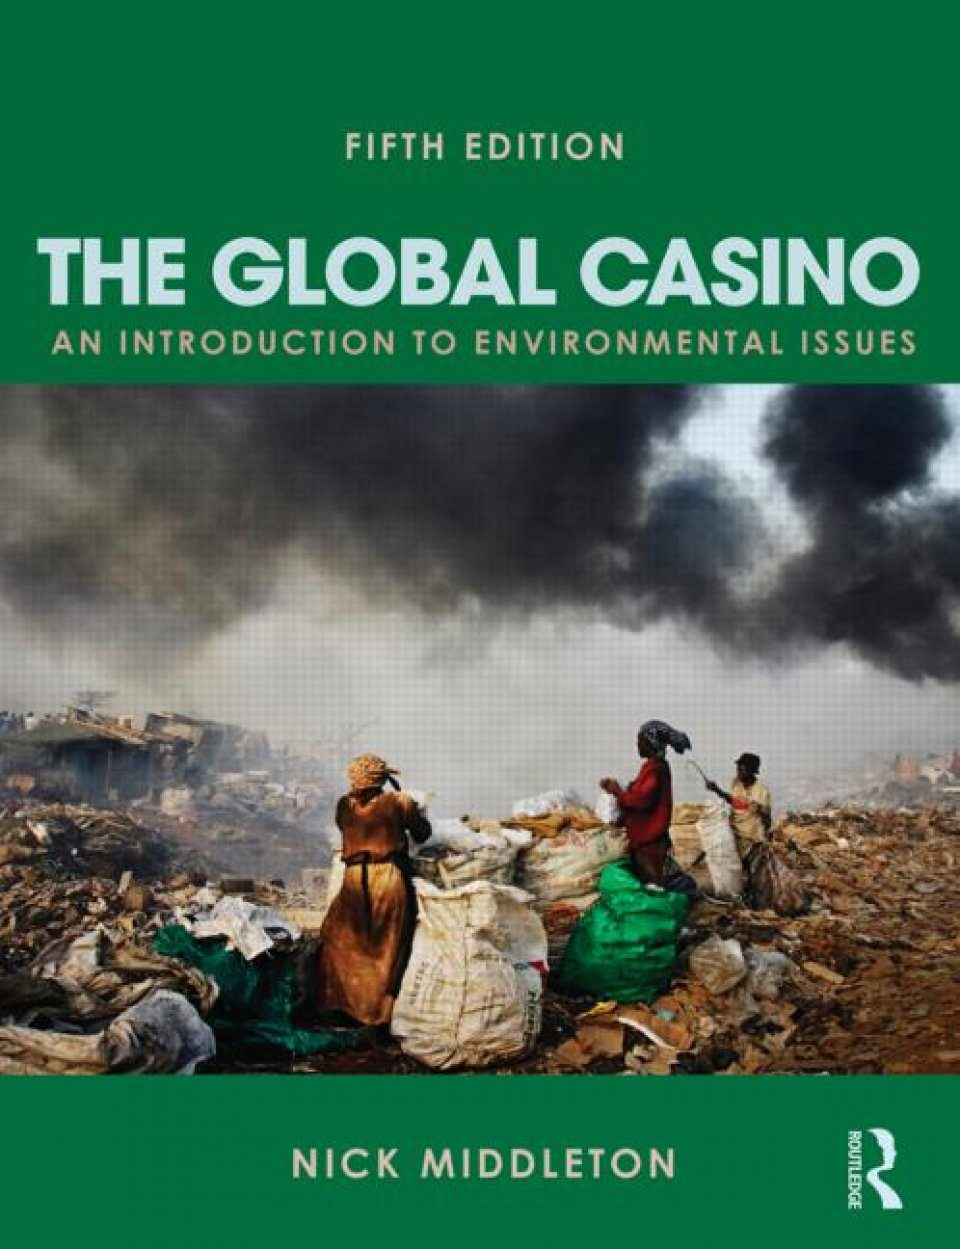 The Global Casino